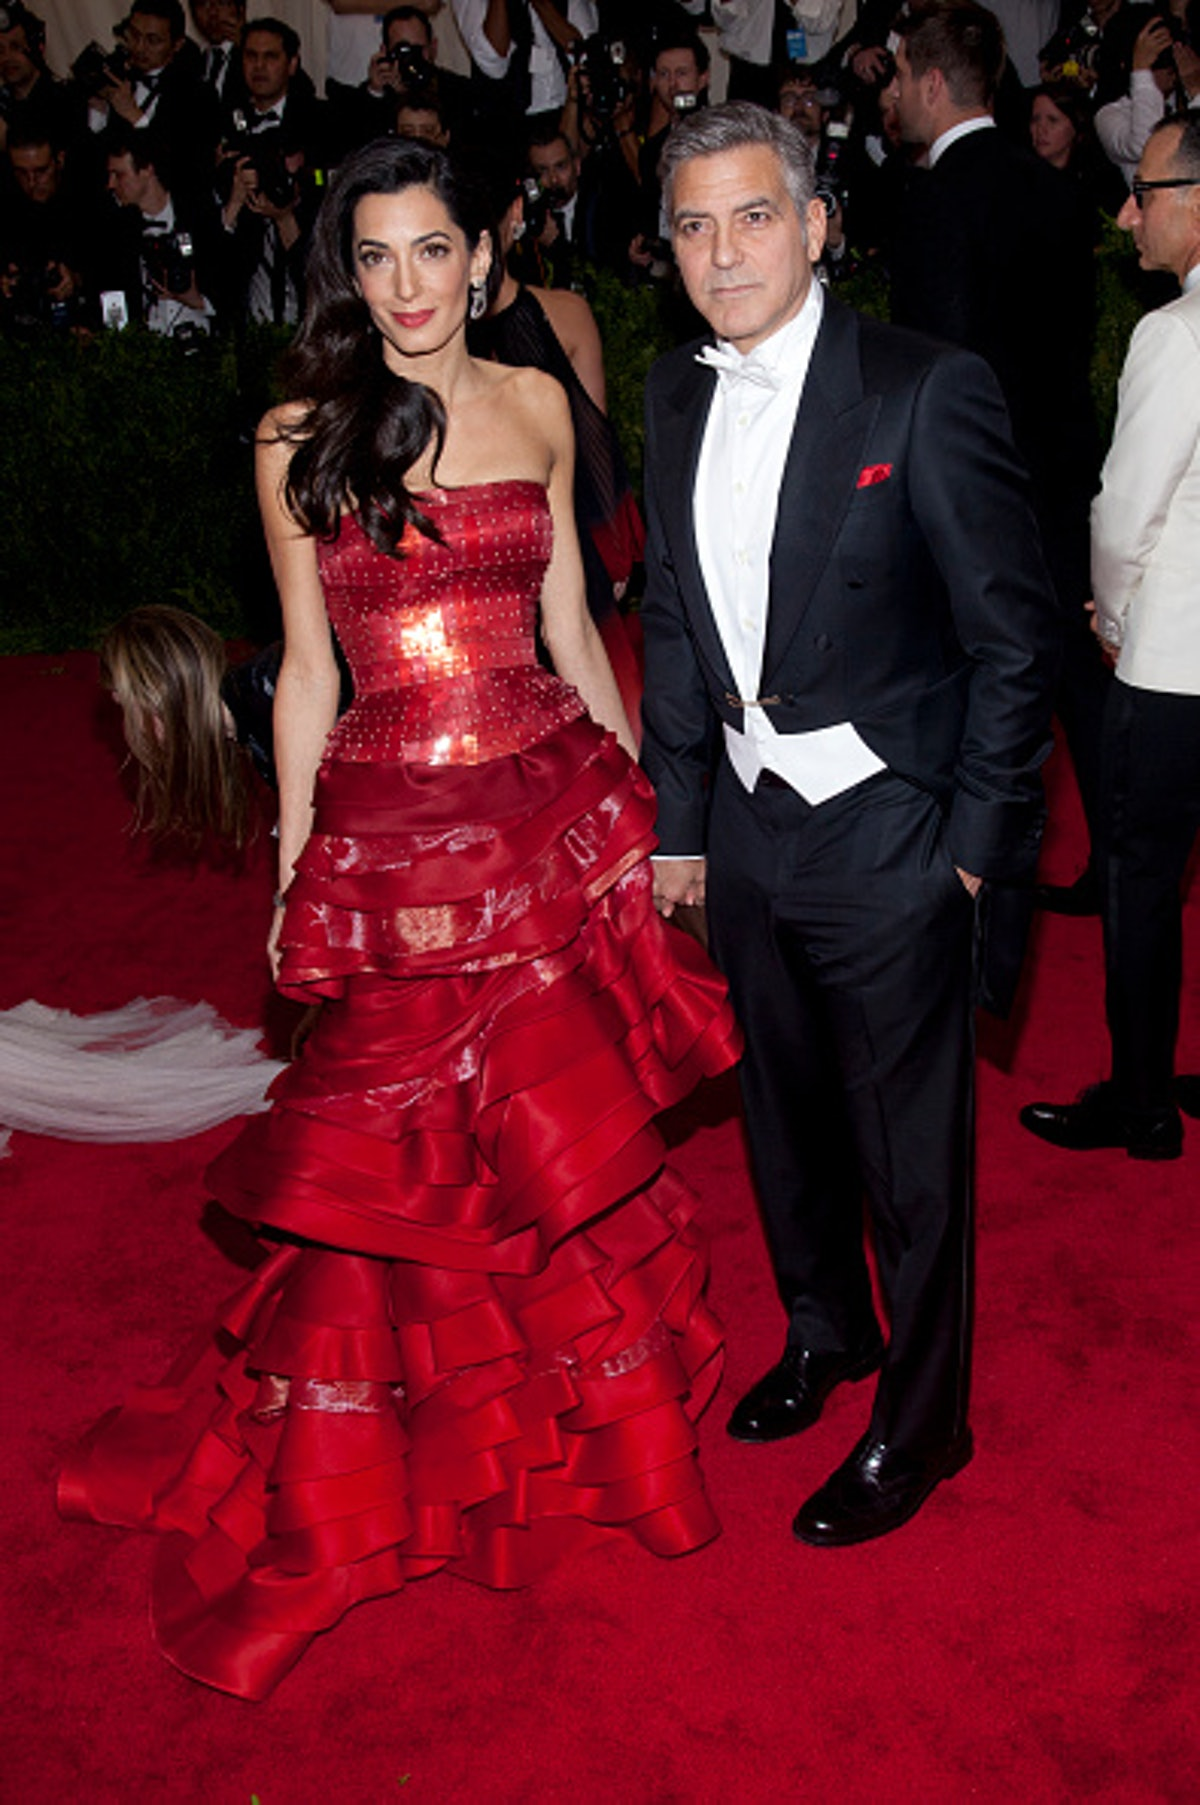 George Clooney in a black and white tux, Amal in a red gown